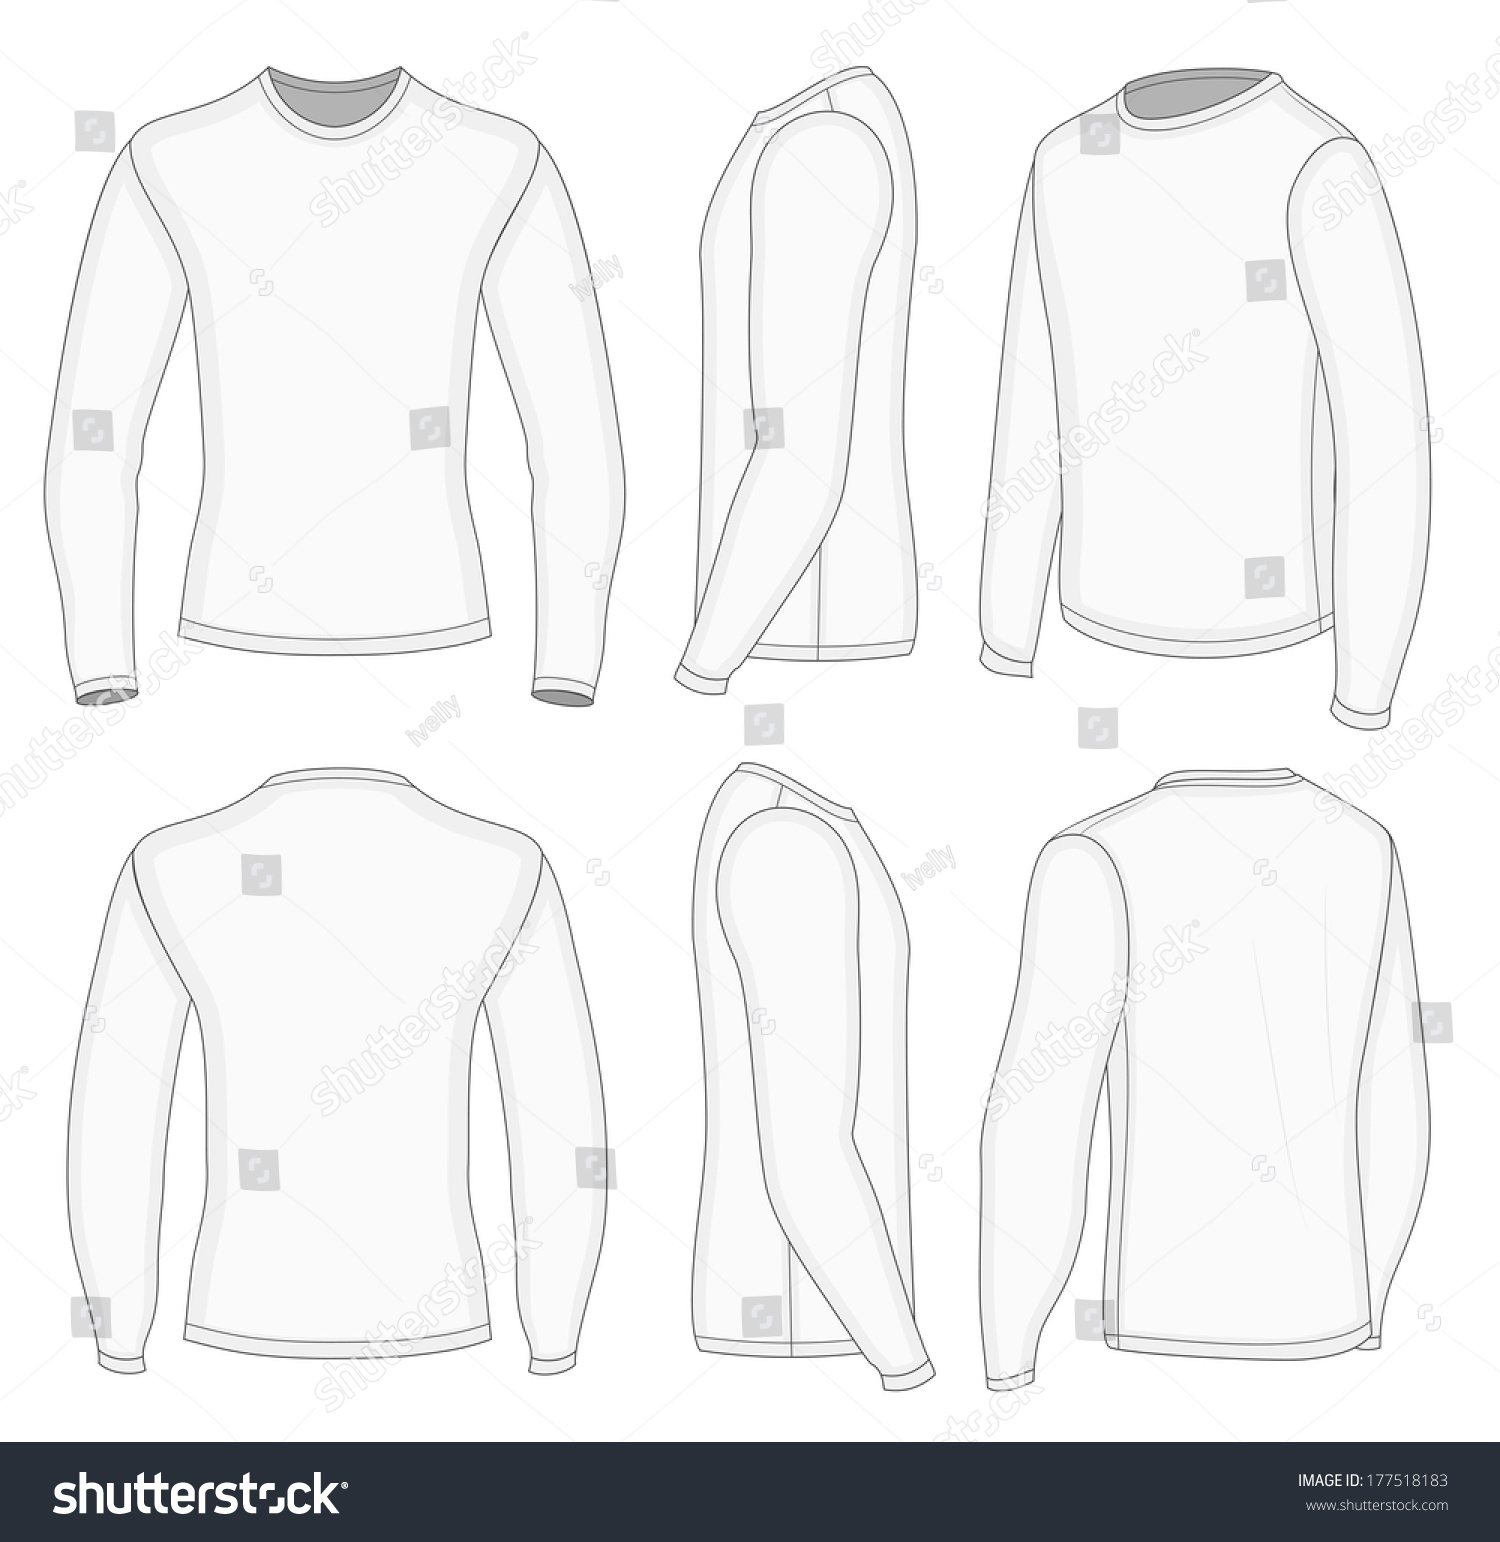 Design t shirt long sleeve - All Six Views Men S White Long Sleeve T Shirt Design Templates Front Back